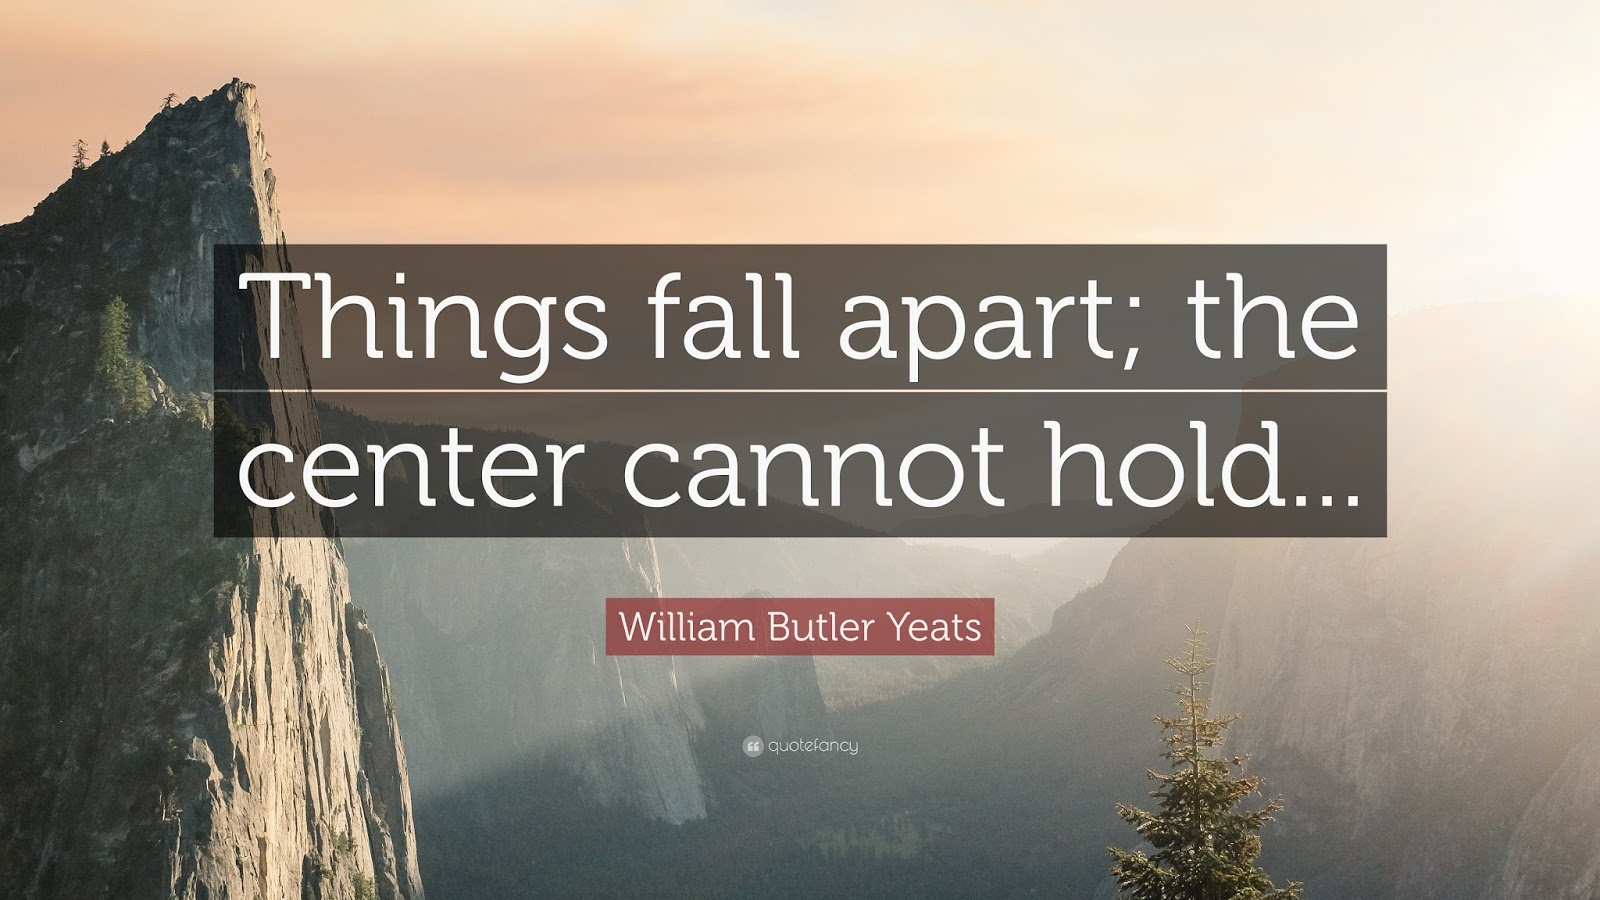 the center does not hold things fall apart